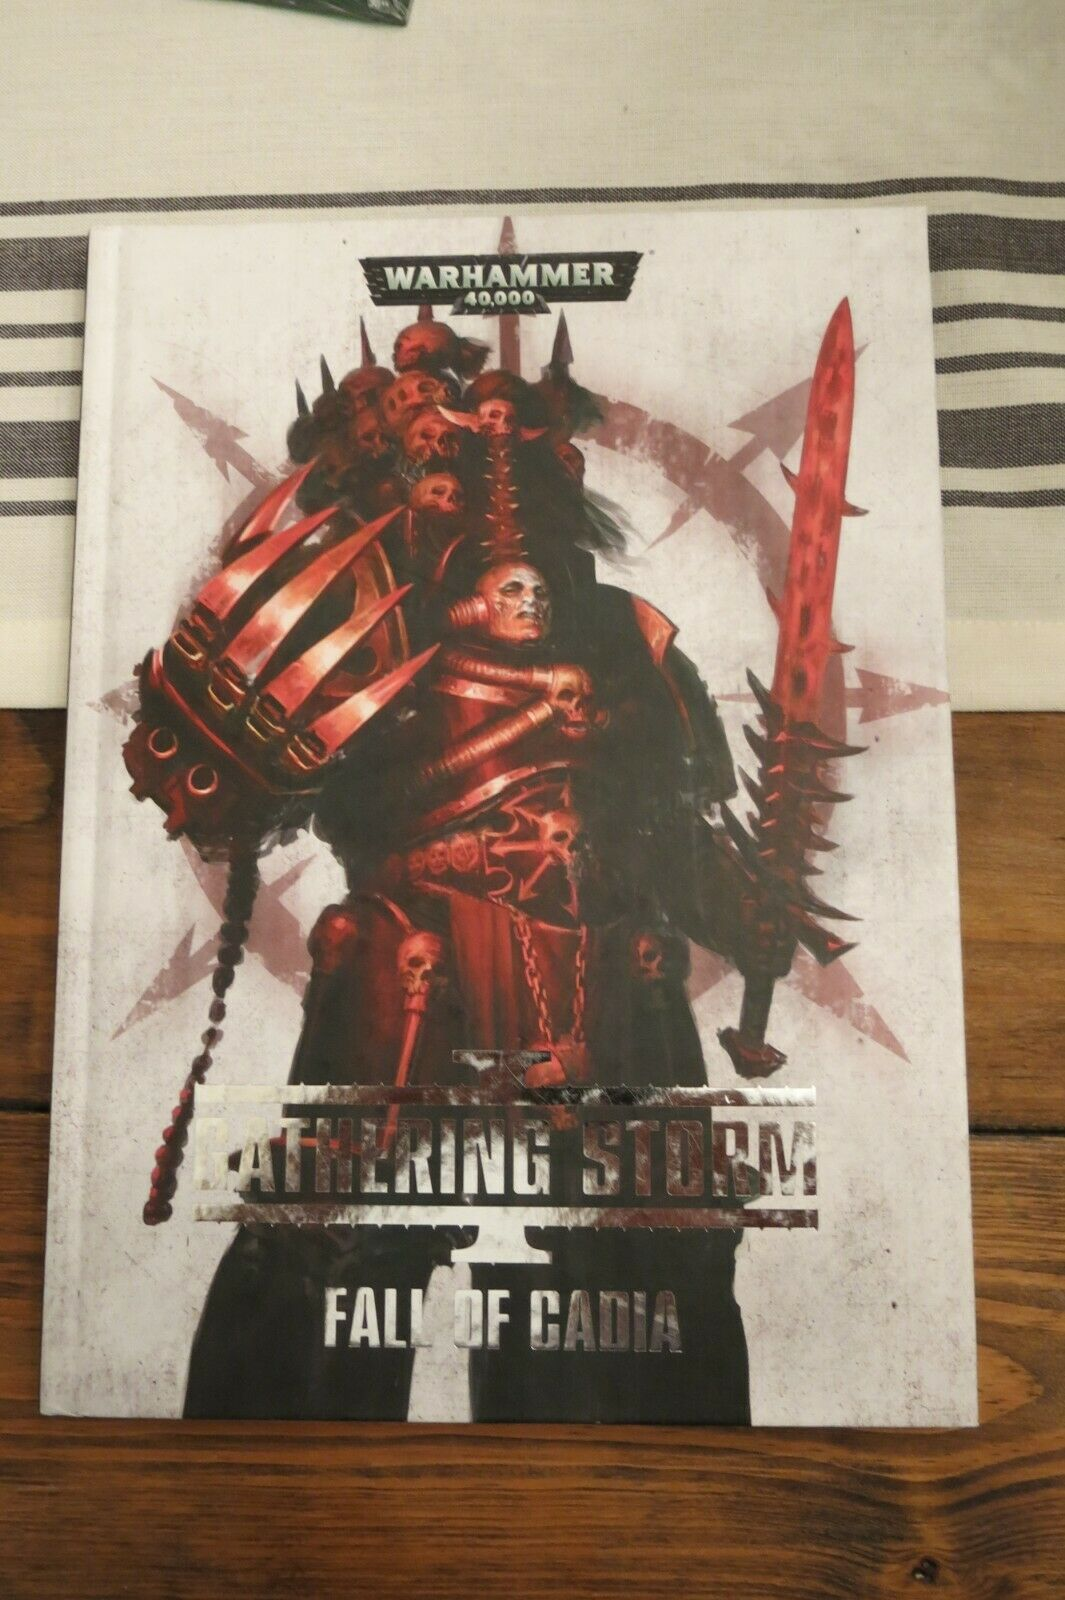 WARHAMMER GATHERING STORM I FALL OF CADIA HARDCOVER VERY RARE GAMES WORKSHOP OOP